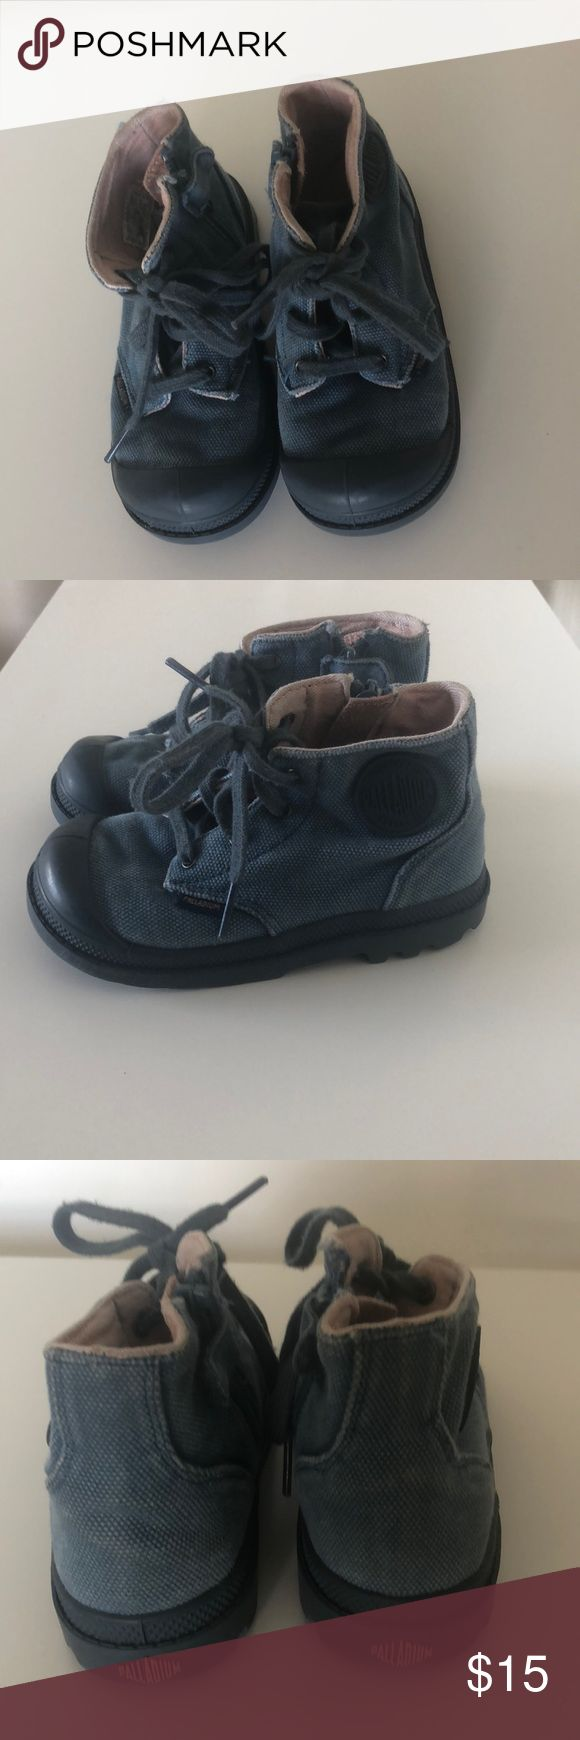 Palladium boys boots Perfect for fall and winter. Stylish boots. In good used condition. Love this with corduroy pants! Palladium Shoes Boots